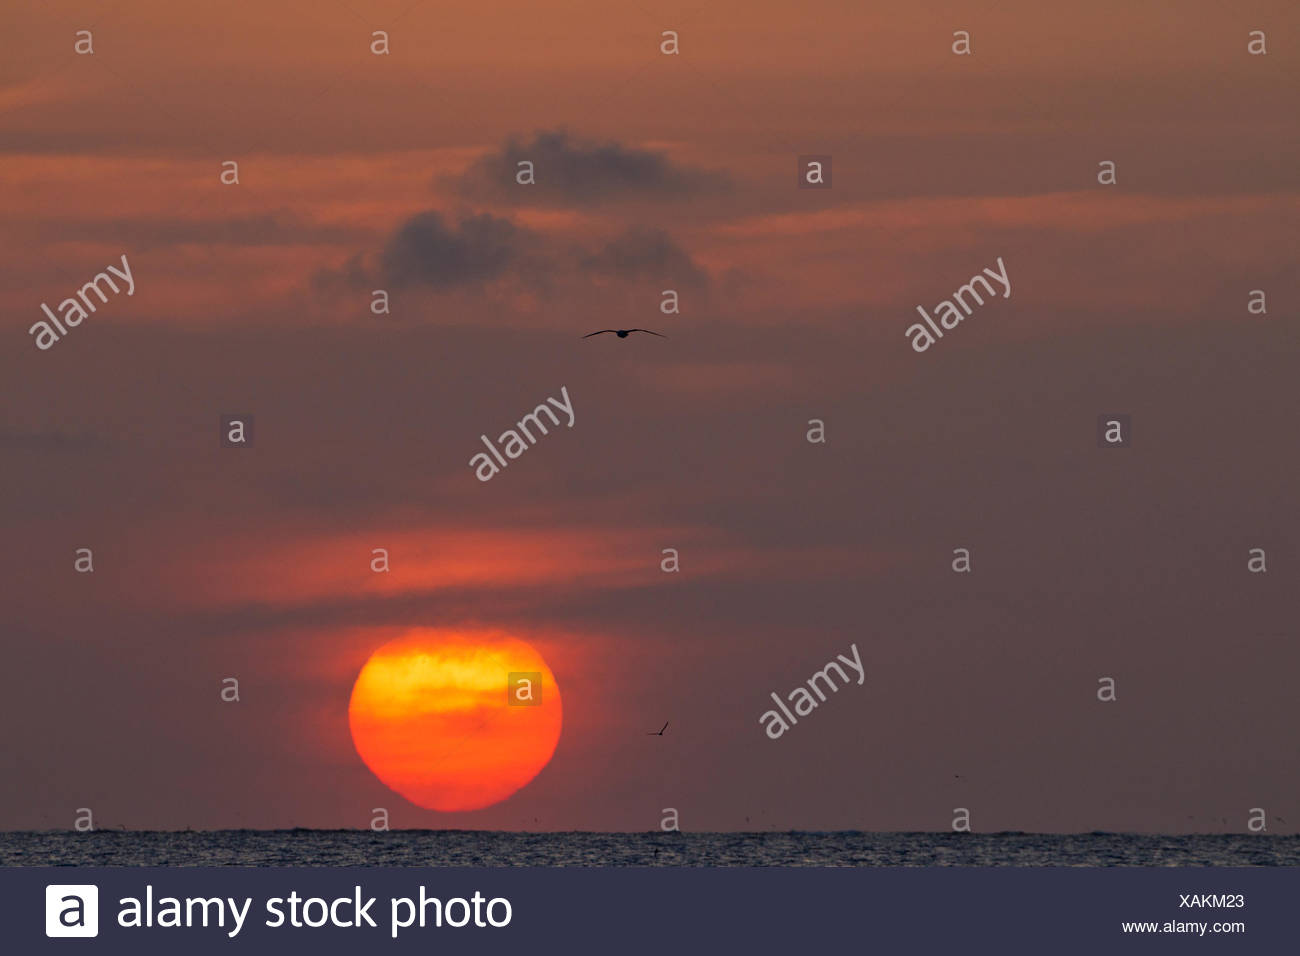 Sunset with flying albatross (Phoebastria spp.), Sand Island, Midway Atoll National Wildlife Refuge, Northwest Hawaiian Islands. - Stock Image